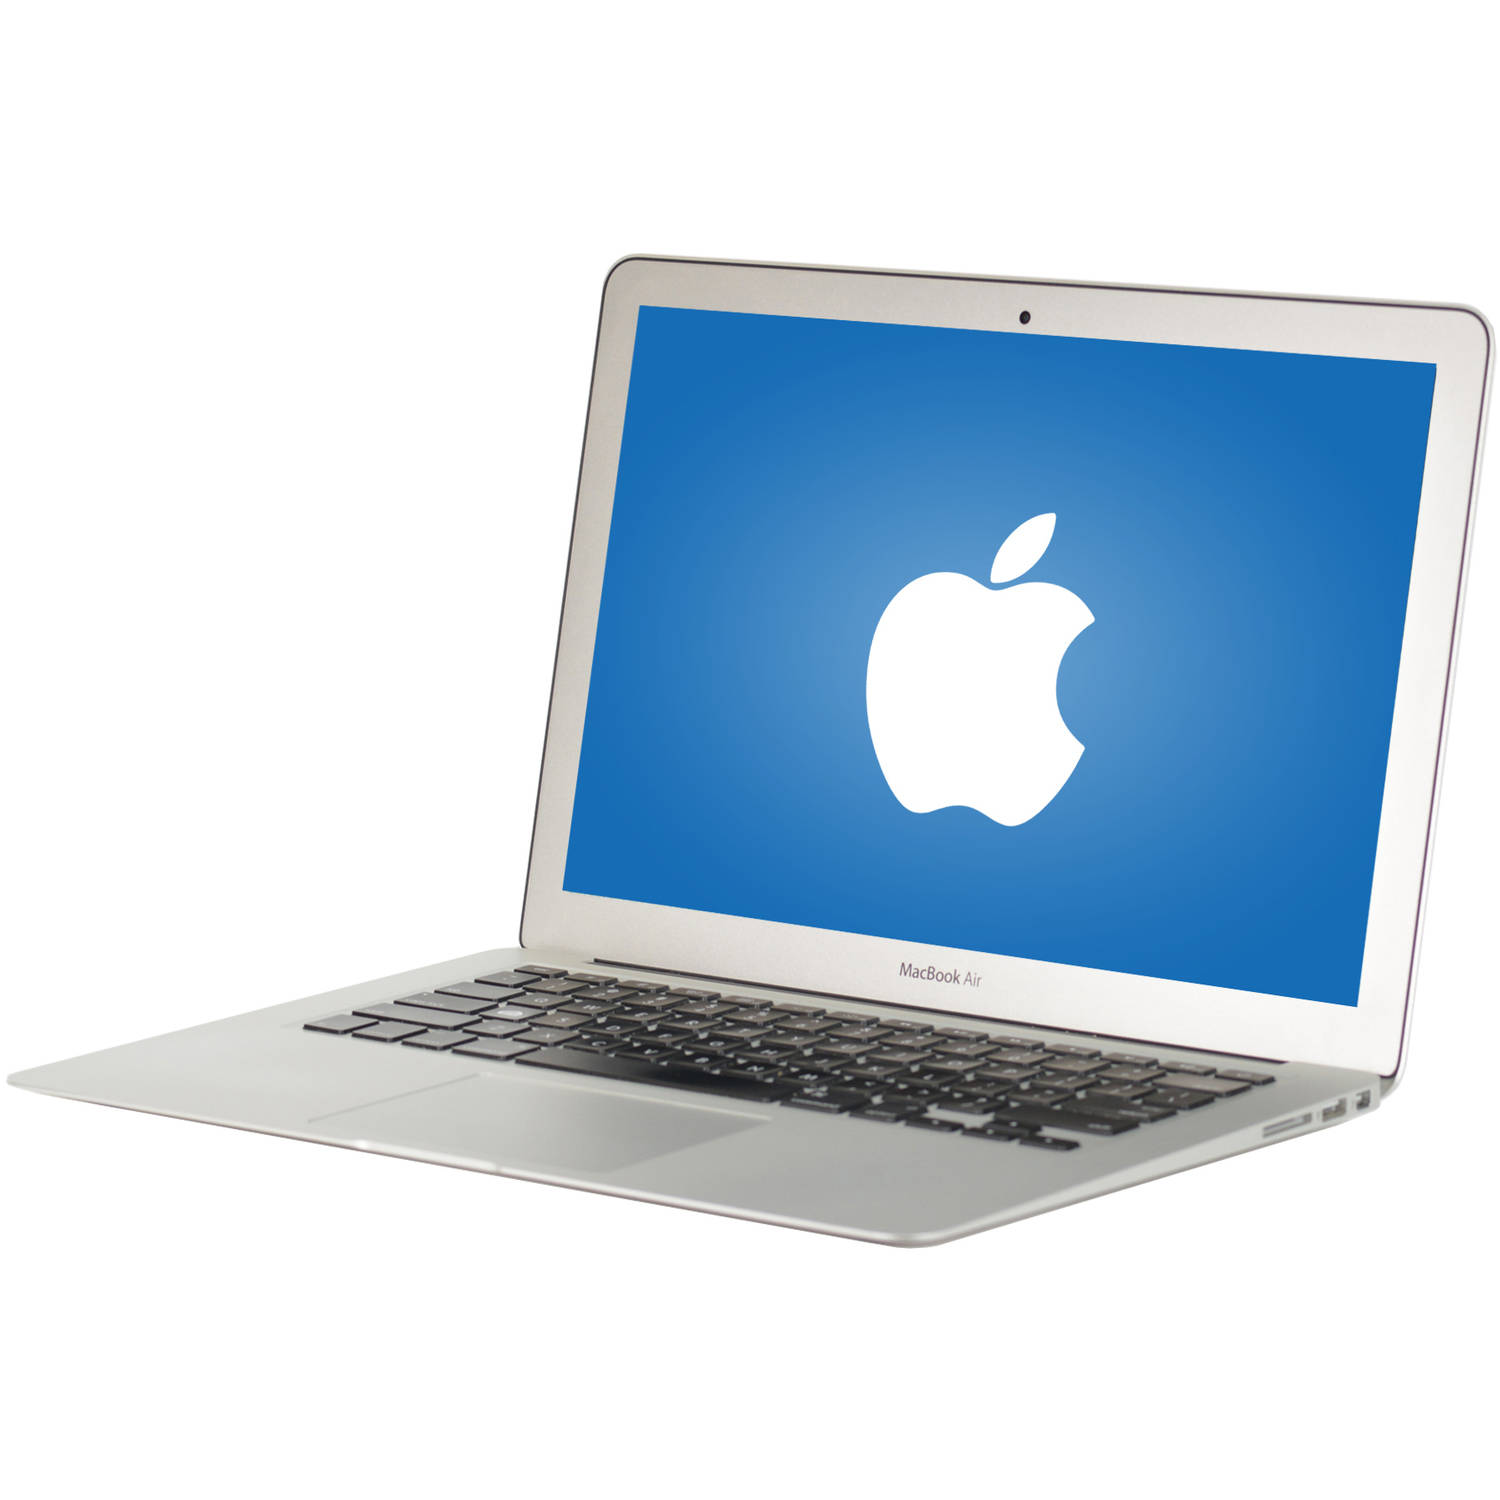 "Refurbished Apple 13.3"" MacBook Air A1466 MD760LL/A with Intel Core i5-4250U Processor, 4GB Memory, 128GB Solid State Drive and Mac OS X 10.10"